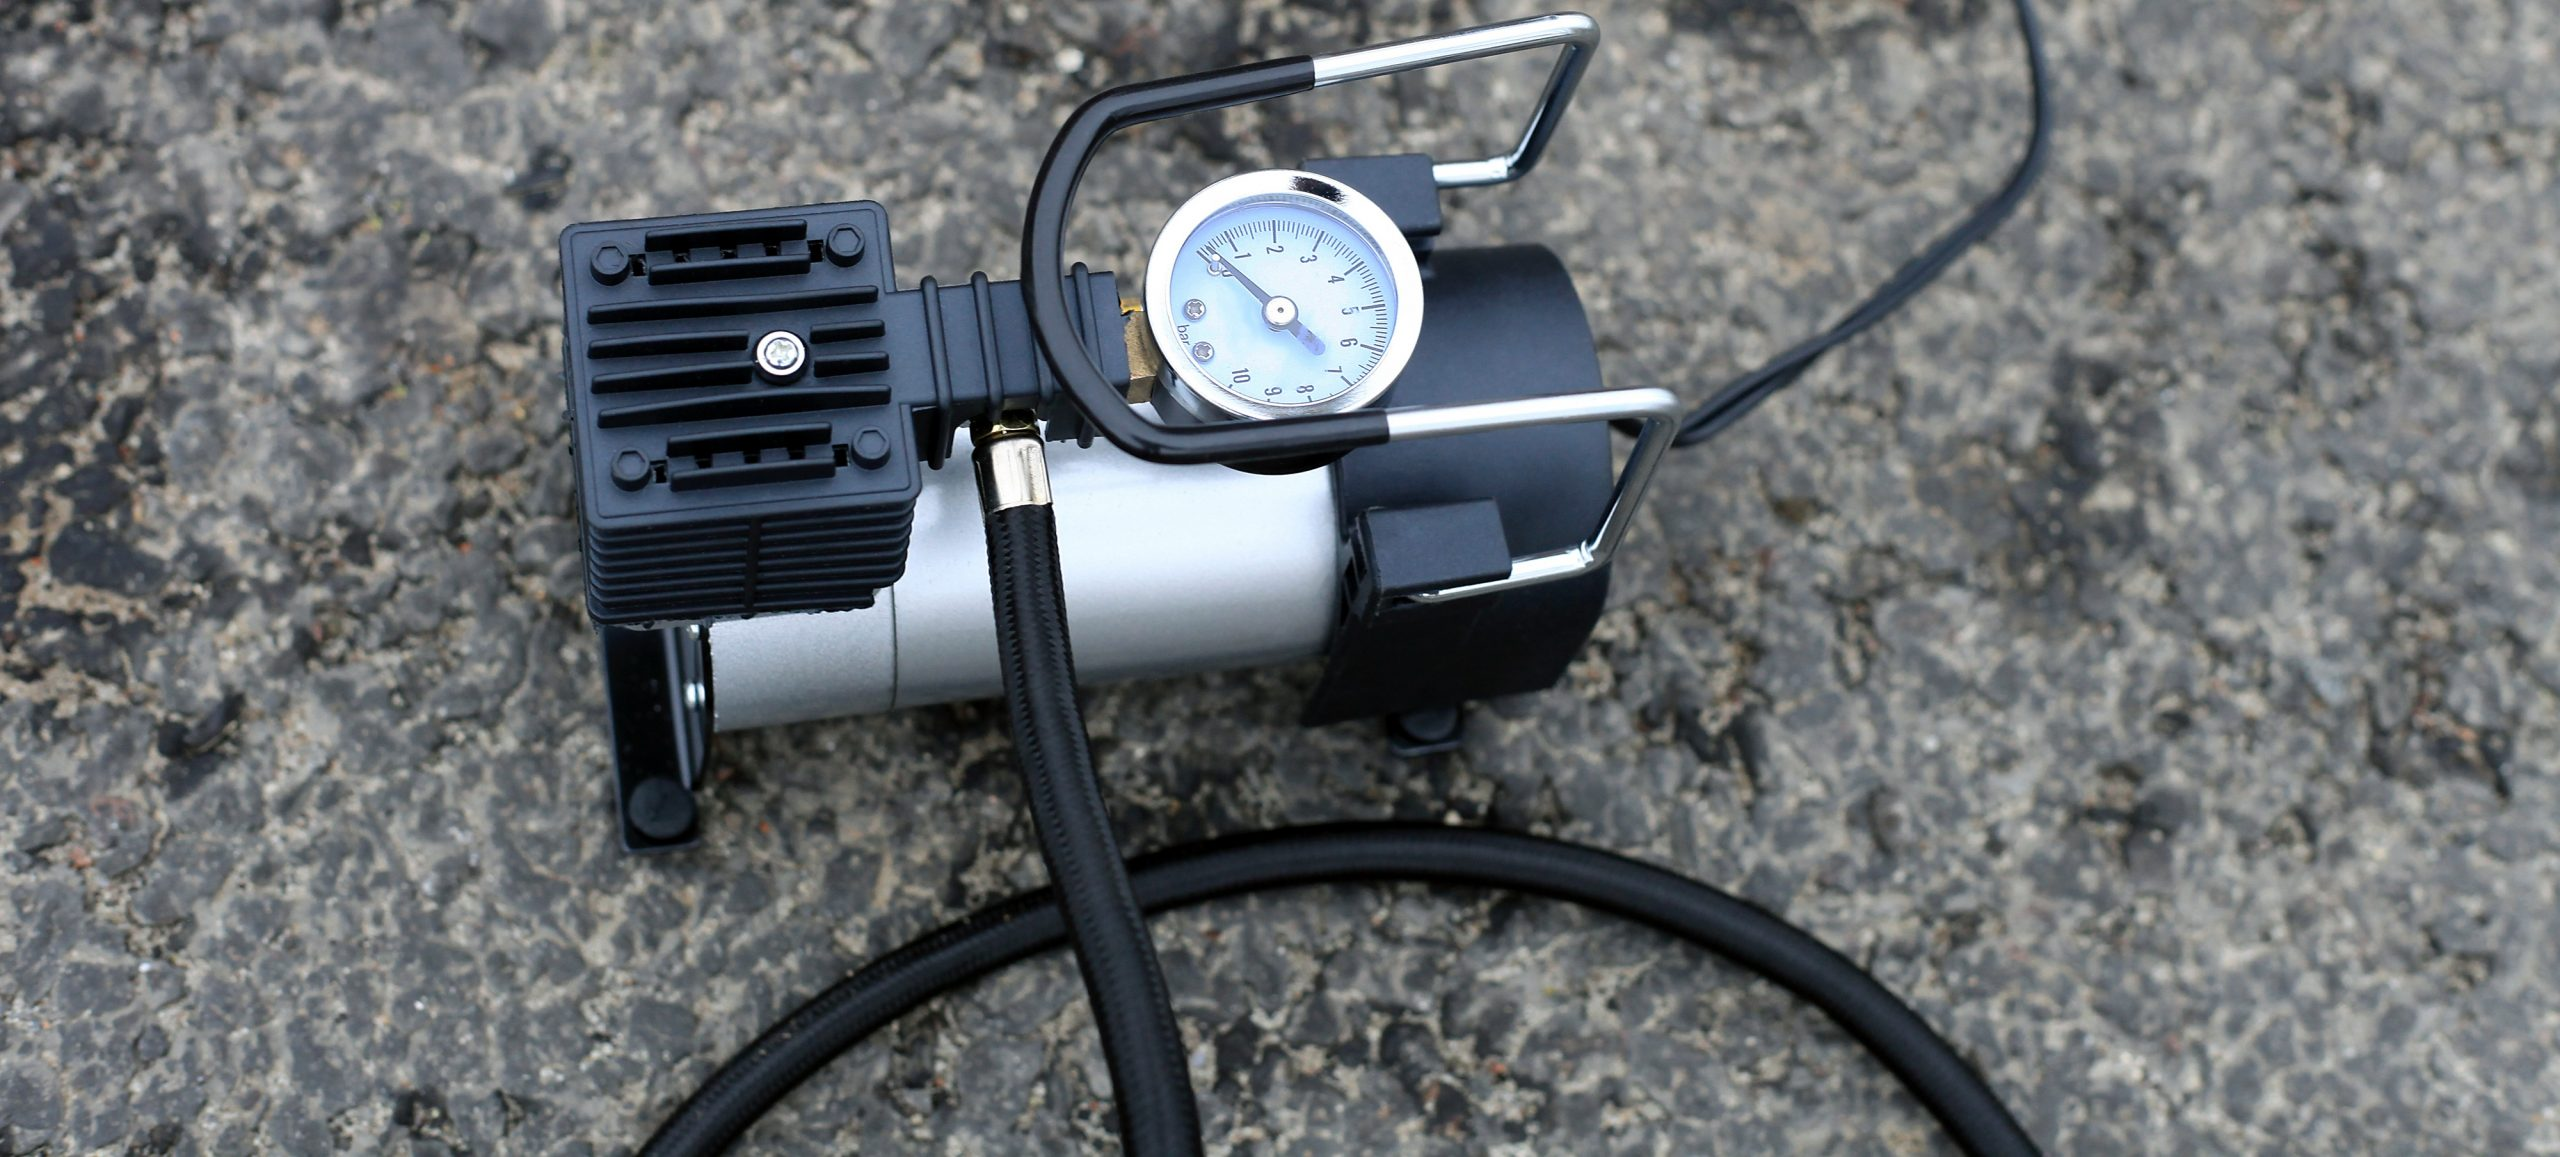 Portable metal air compressor pump for car wheels, driver equipment